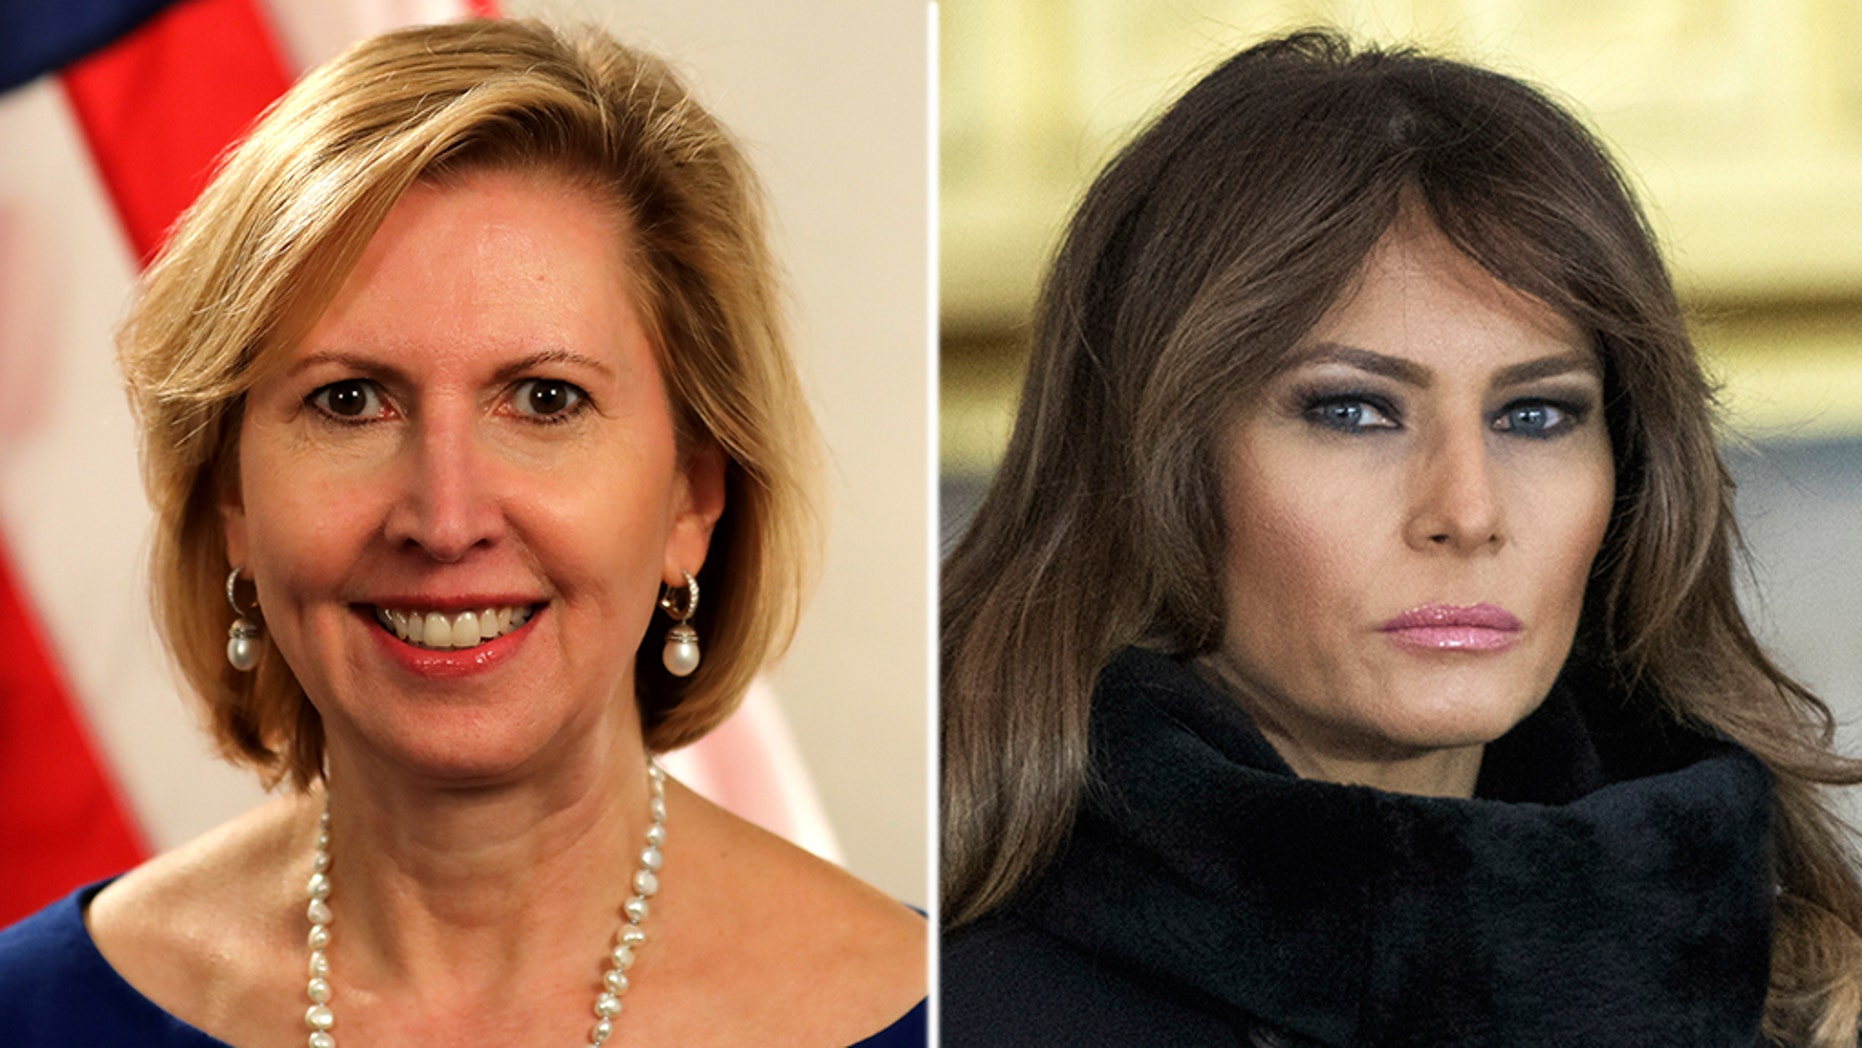 National Security Official Forced Out of White House After Clash With Melania